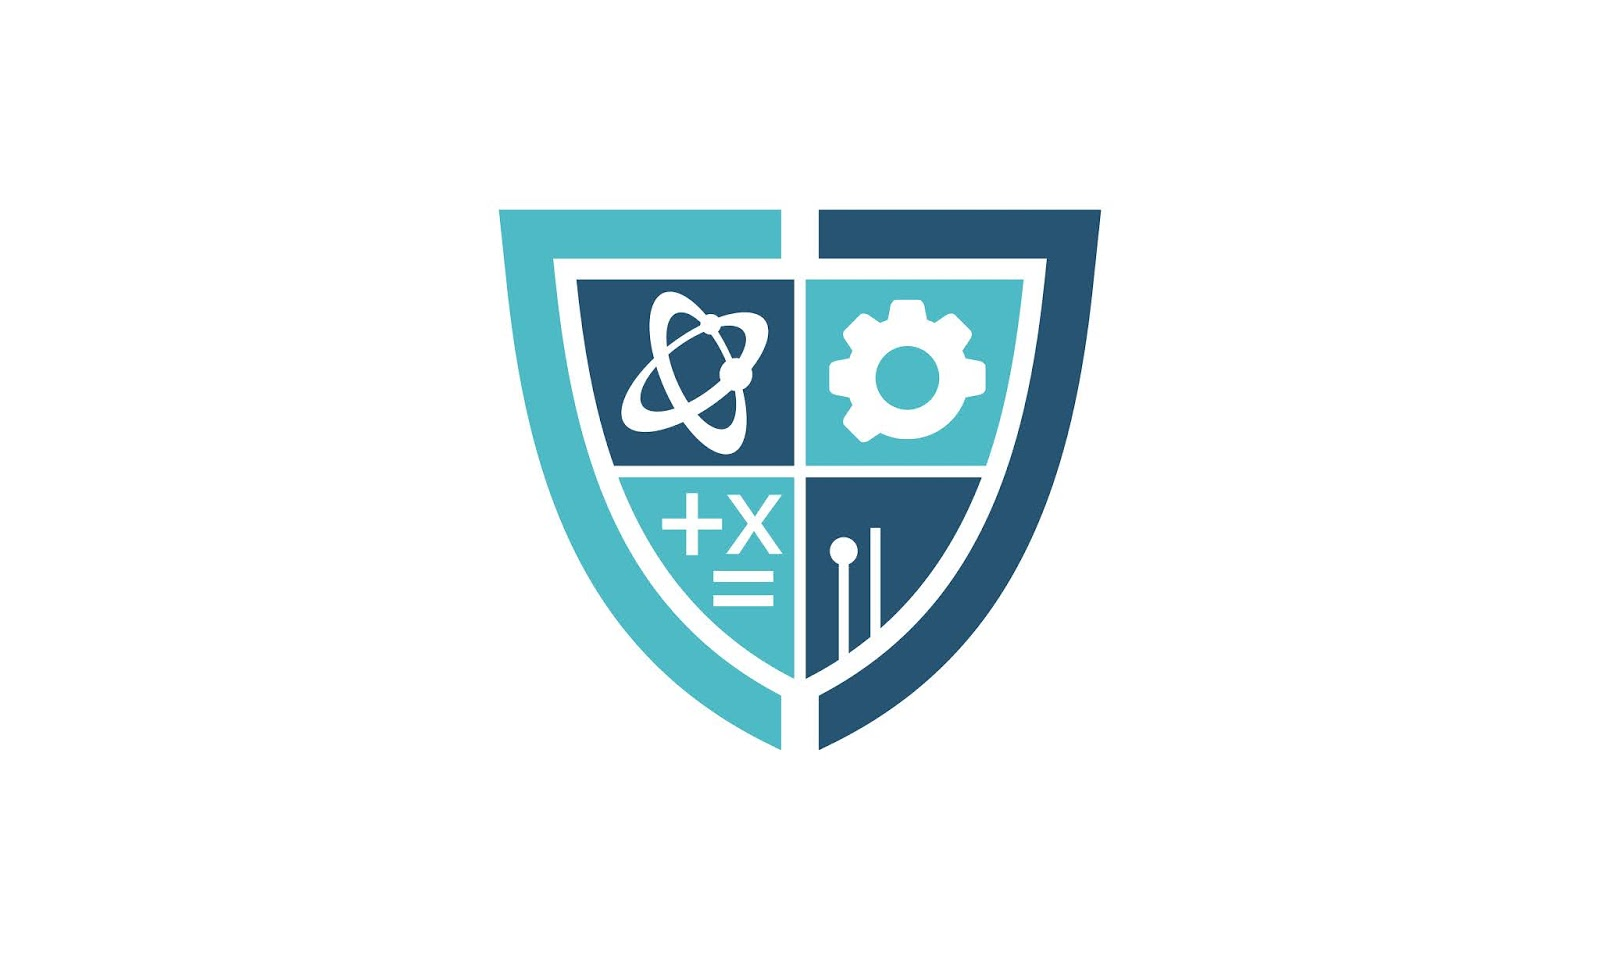 Technology Science Study Shield Free Download Vector CDR, AI, EPS and PNG Formats